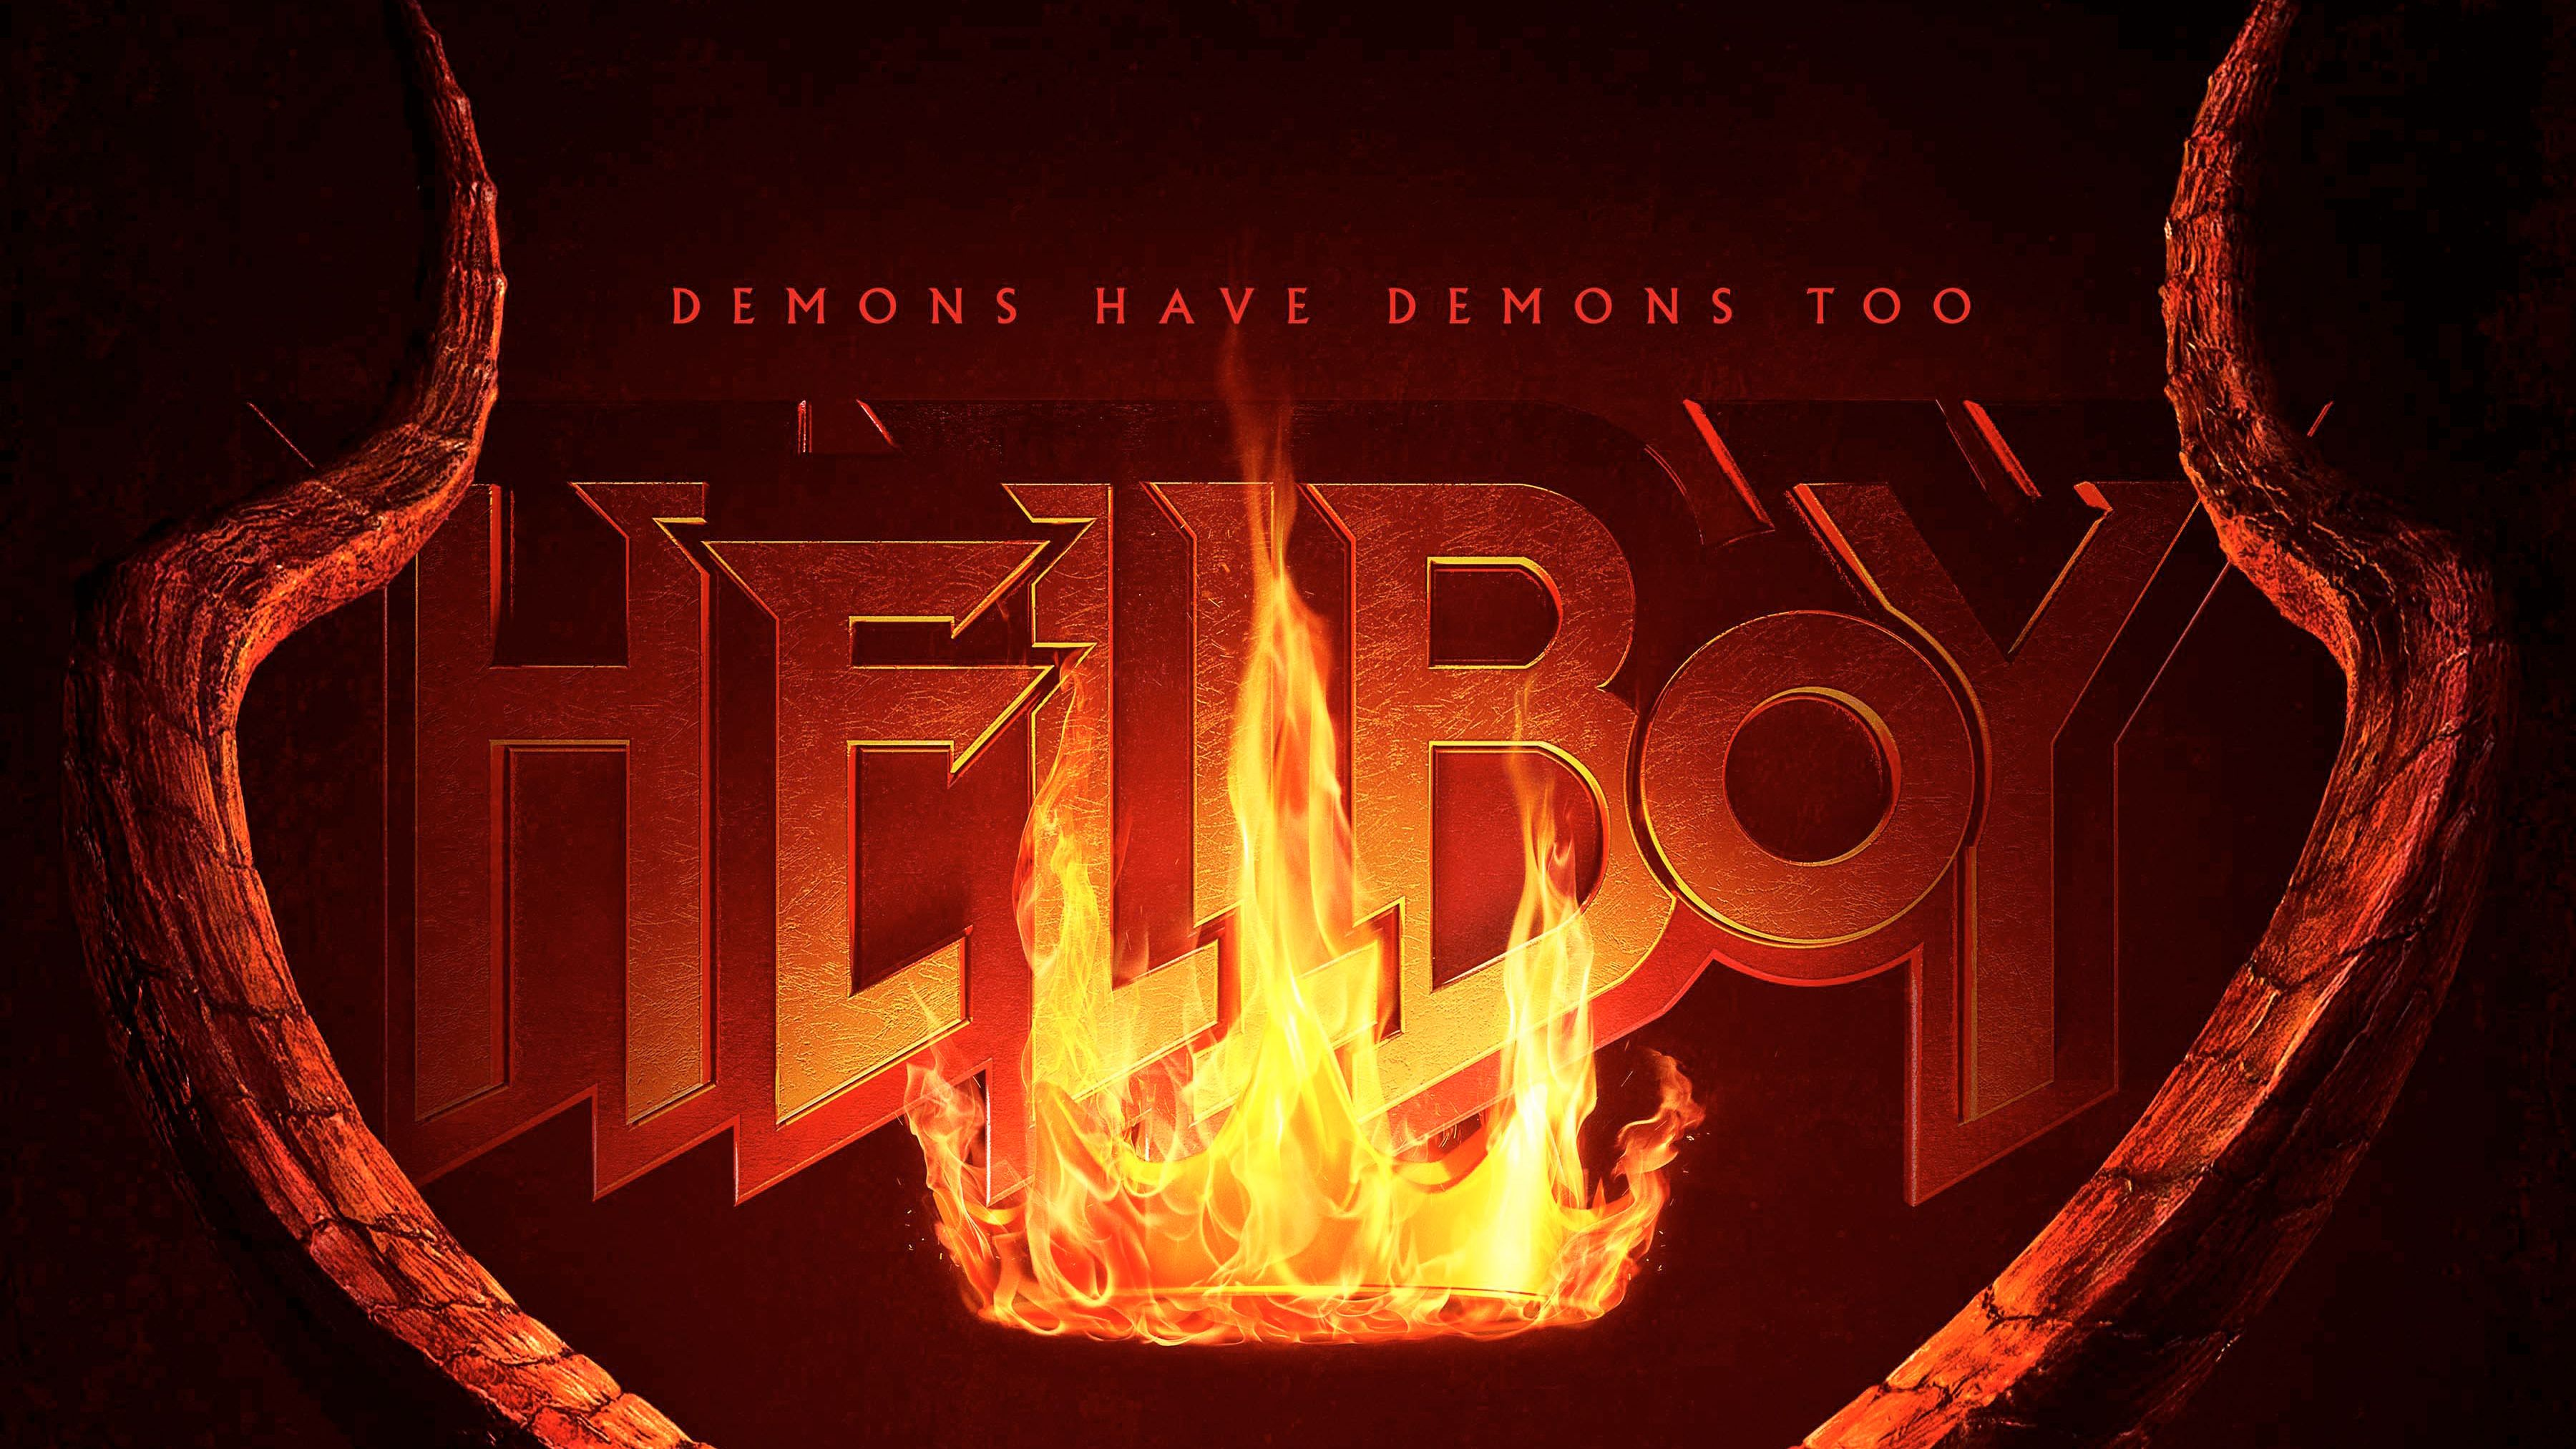 Hellboy 2019 Movie Logo 4k Movies Wallpapers Logo Wallpapers Hellboy Wallpapers Hd Wallpapers 4 Hellboy Wallpaper Movie Wallpapers Iphone Wallpaper Hipster